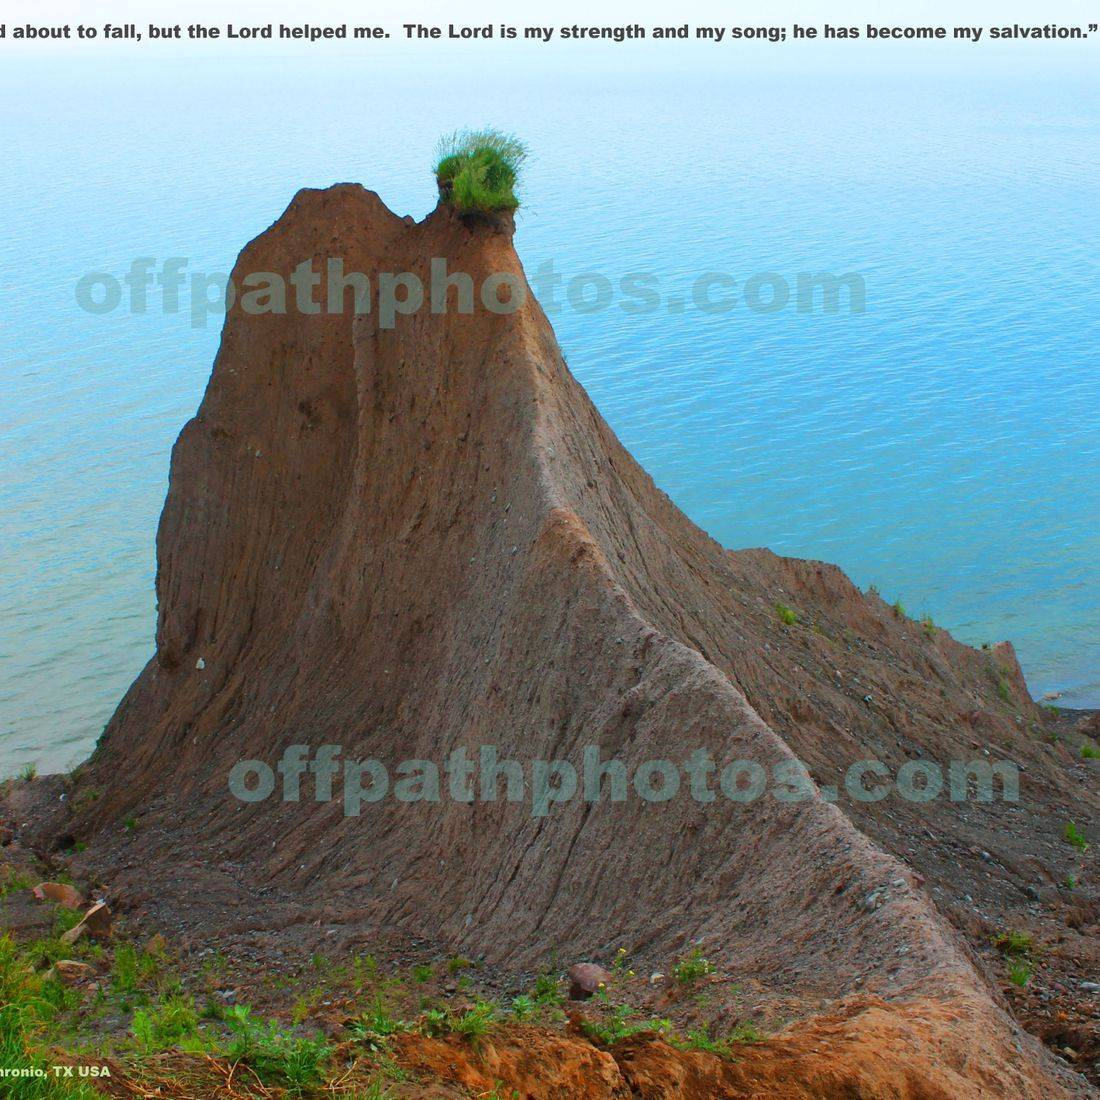 photography, water, scripture, Lord, God, Psalms, bluffs, nature, salvation, strength